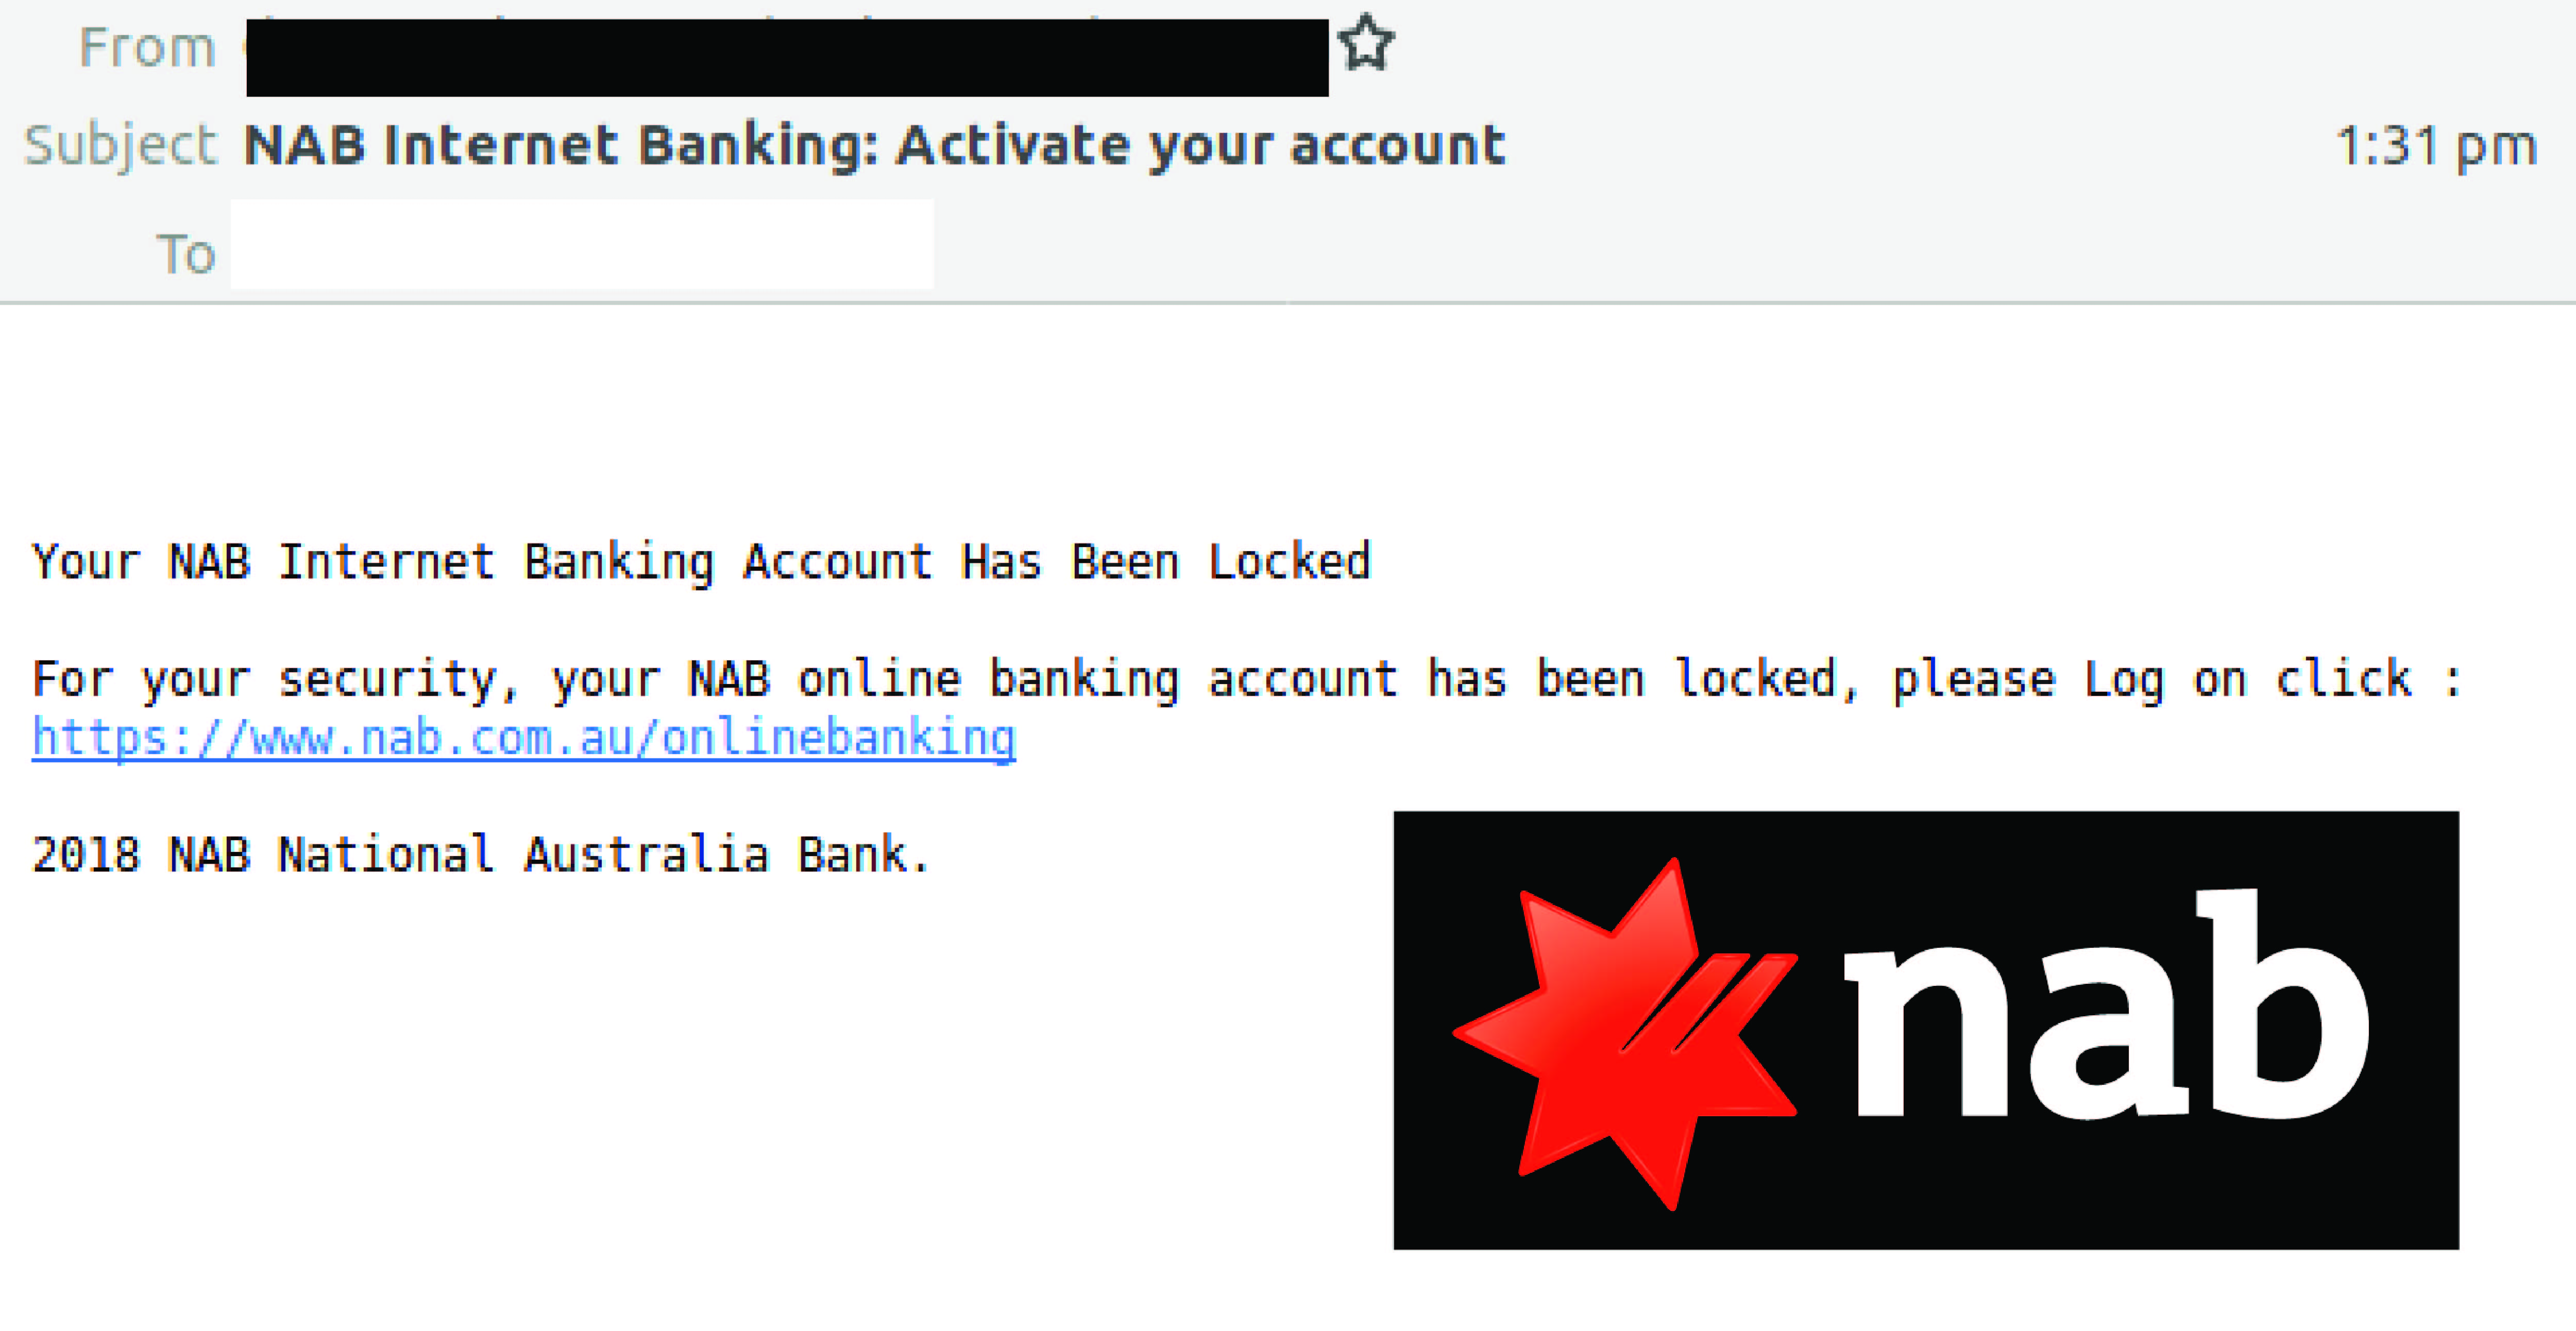 Phishing Attack Delivered By Email Spoofing Nab